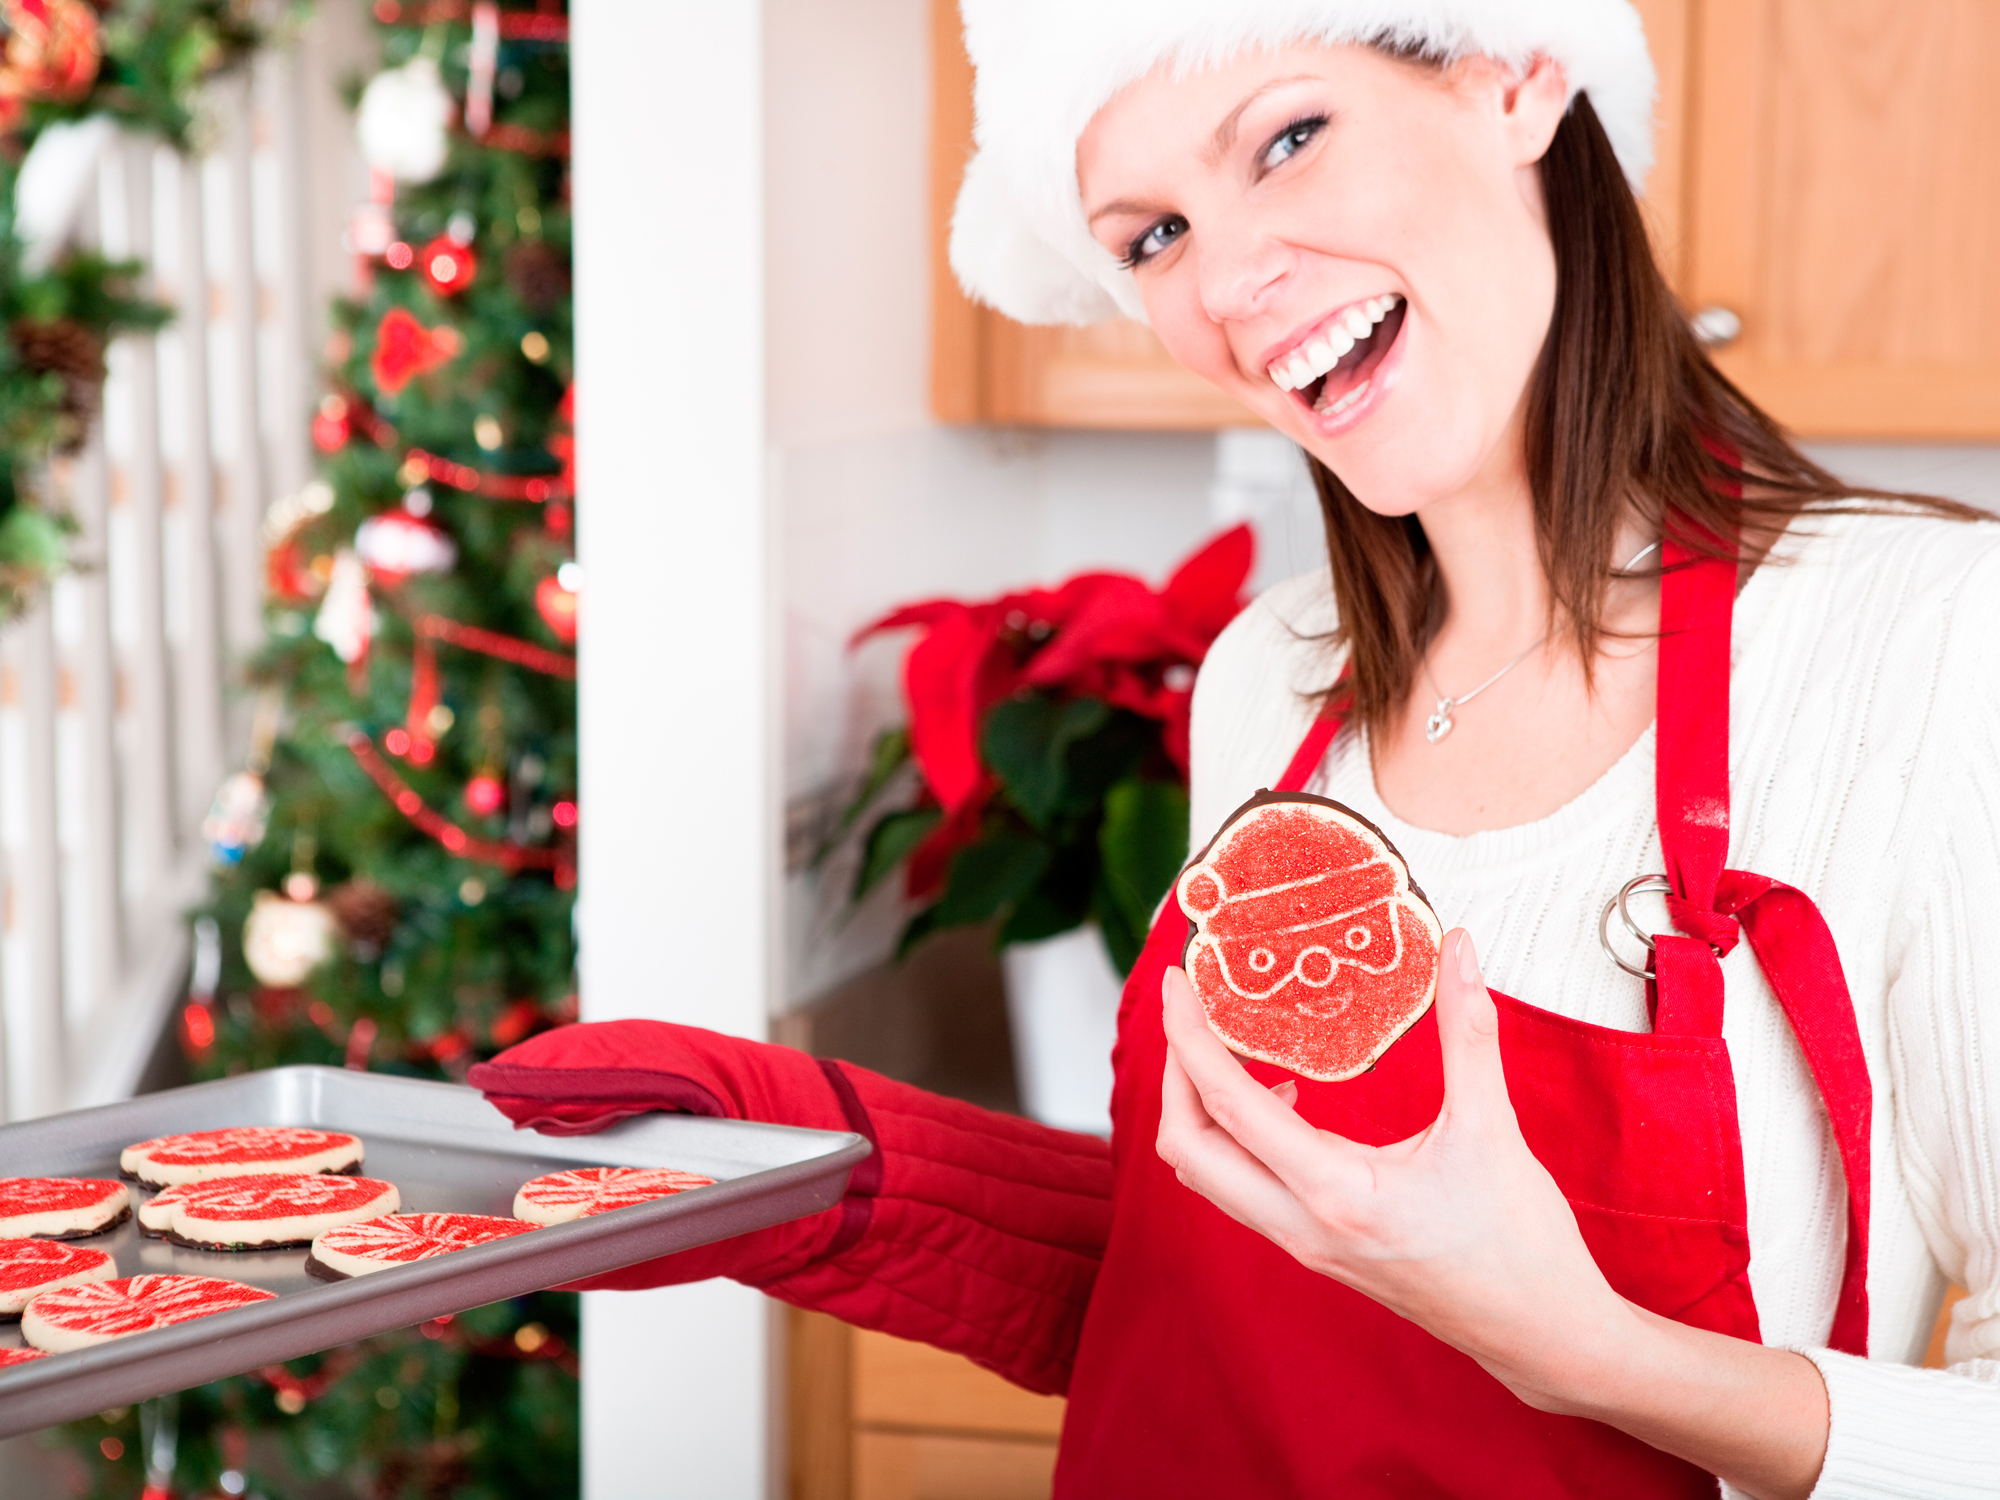 The best holiday food to hamper holiday weight gain